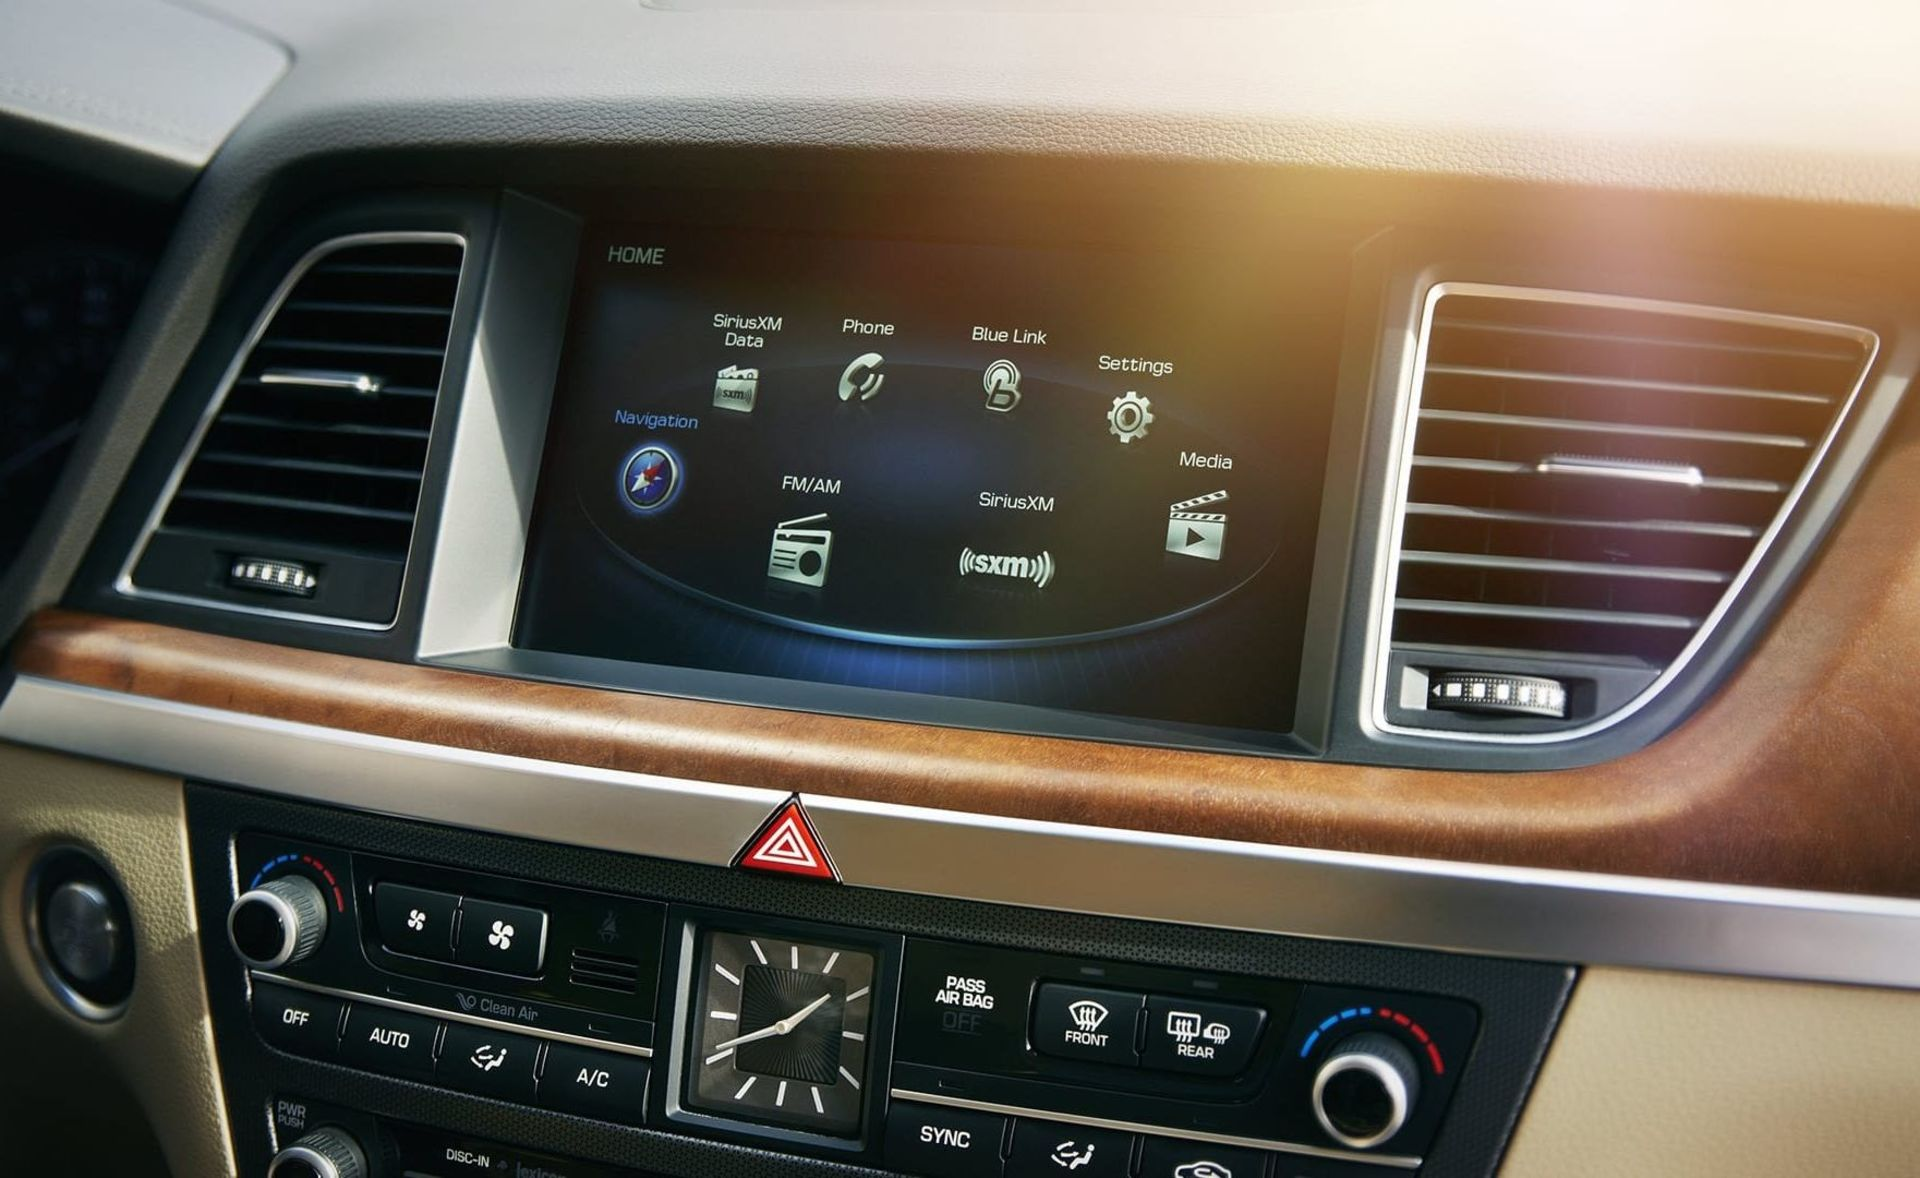 The G80 Center Touchscreen Display